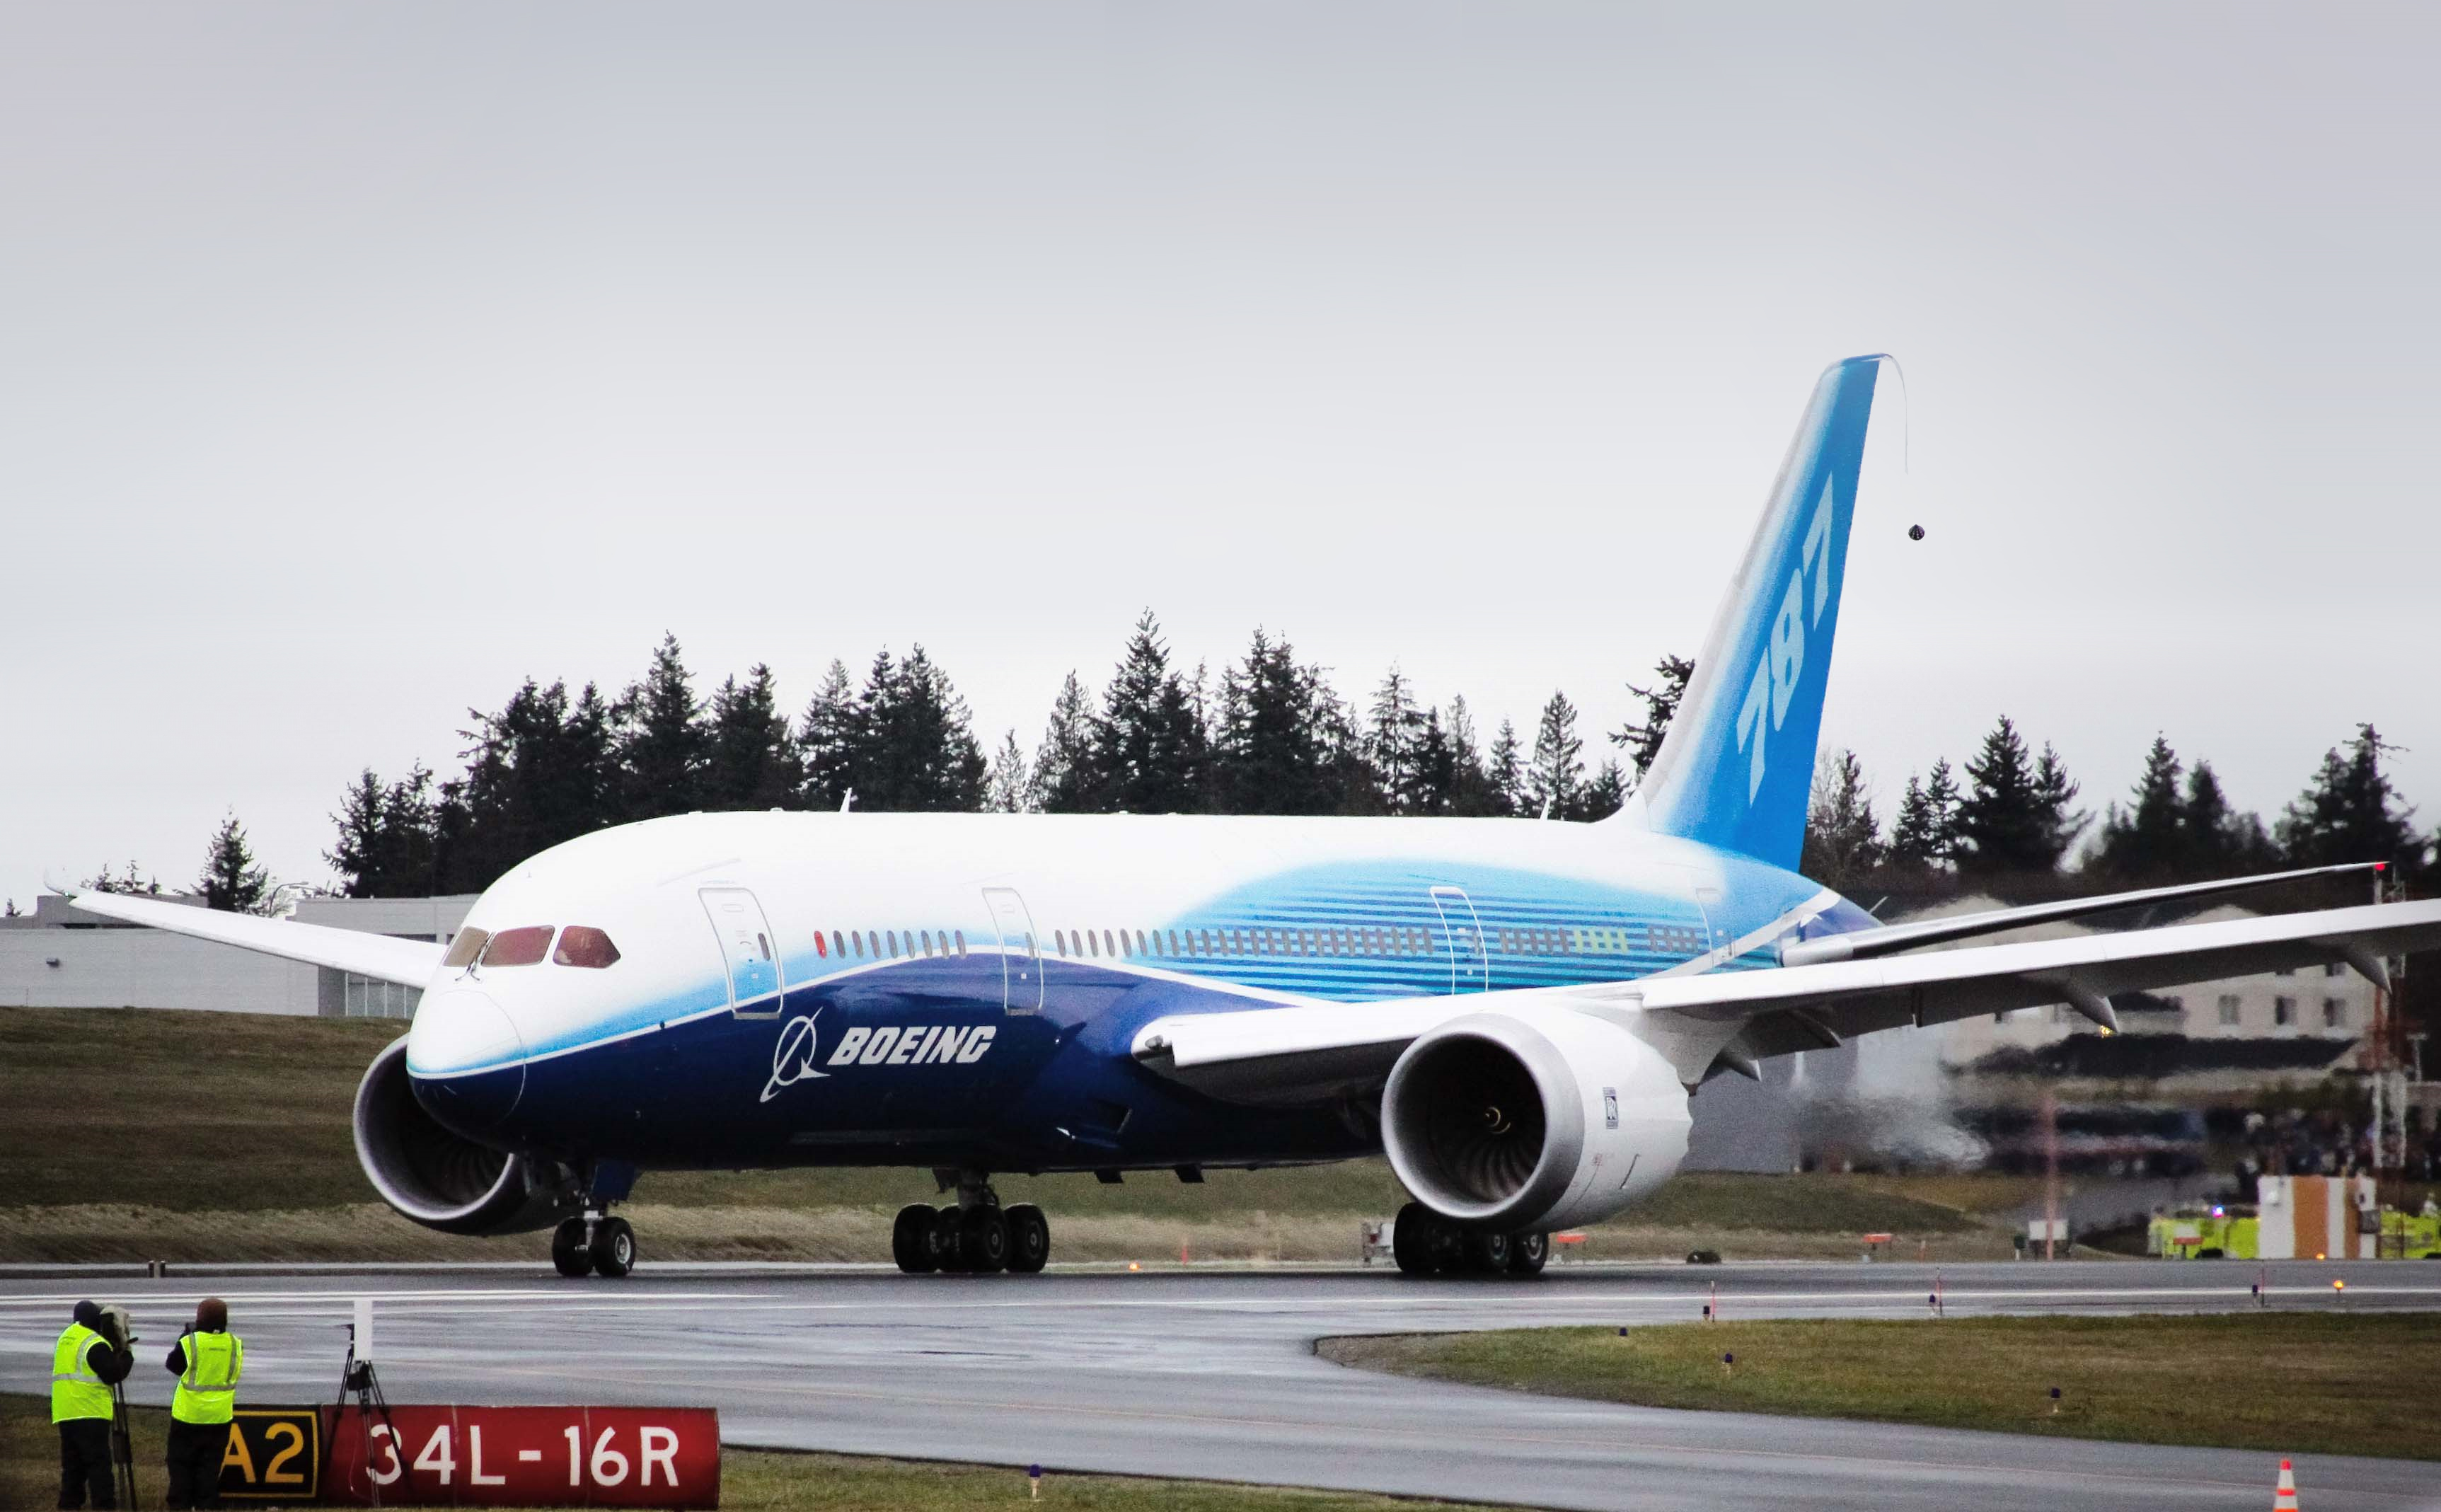 The Boeing 787 8 Dreamliner First Flew In 2009 And Composite Body Airliner Is Renowned For Its Range Comfort Fuel Efficiency